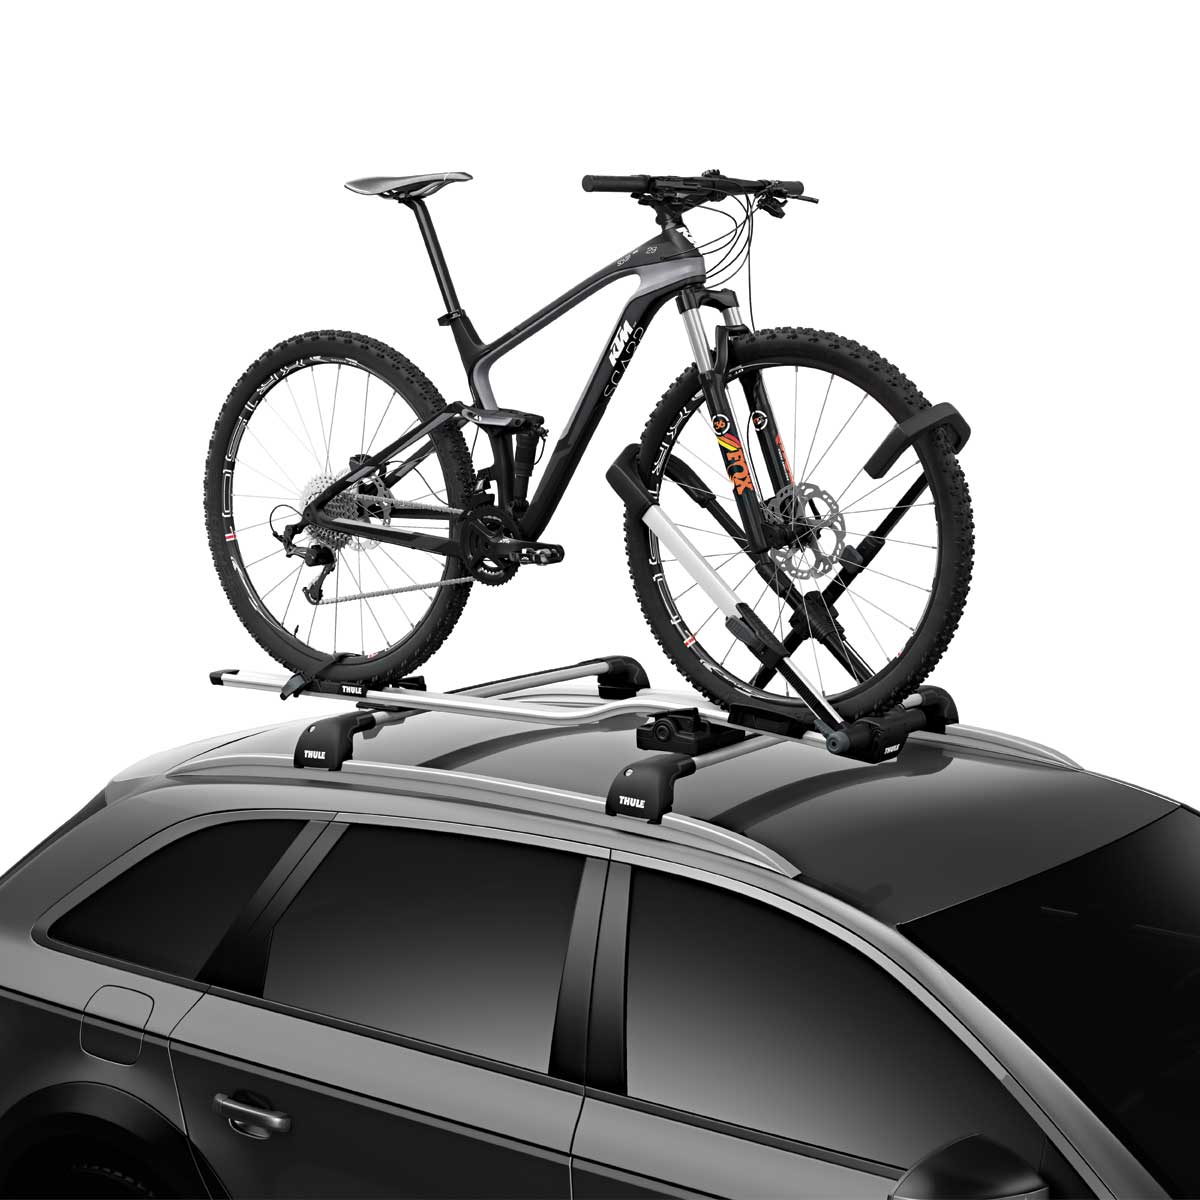 Thule UpRide 599 Cycle Carrier